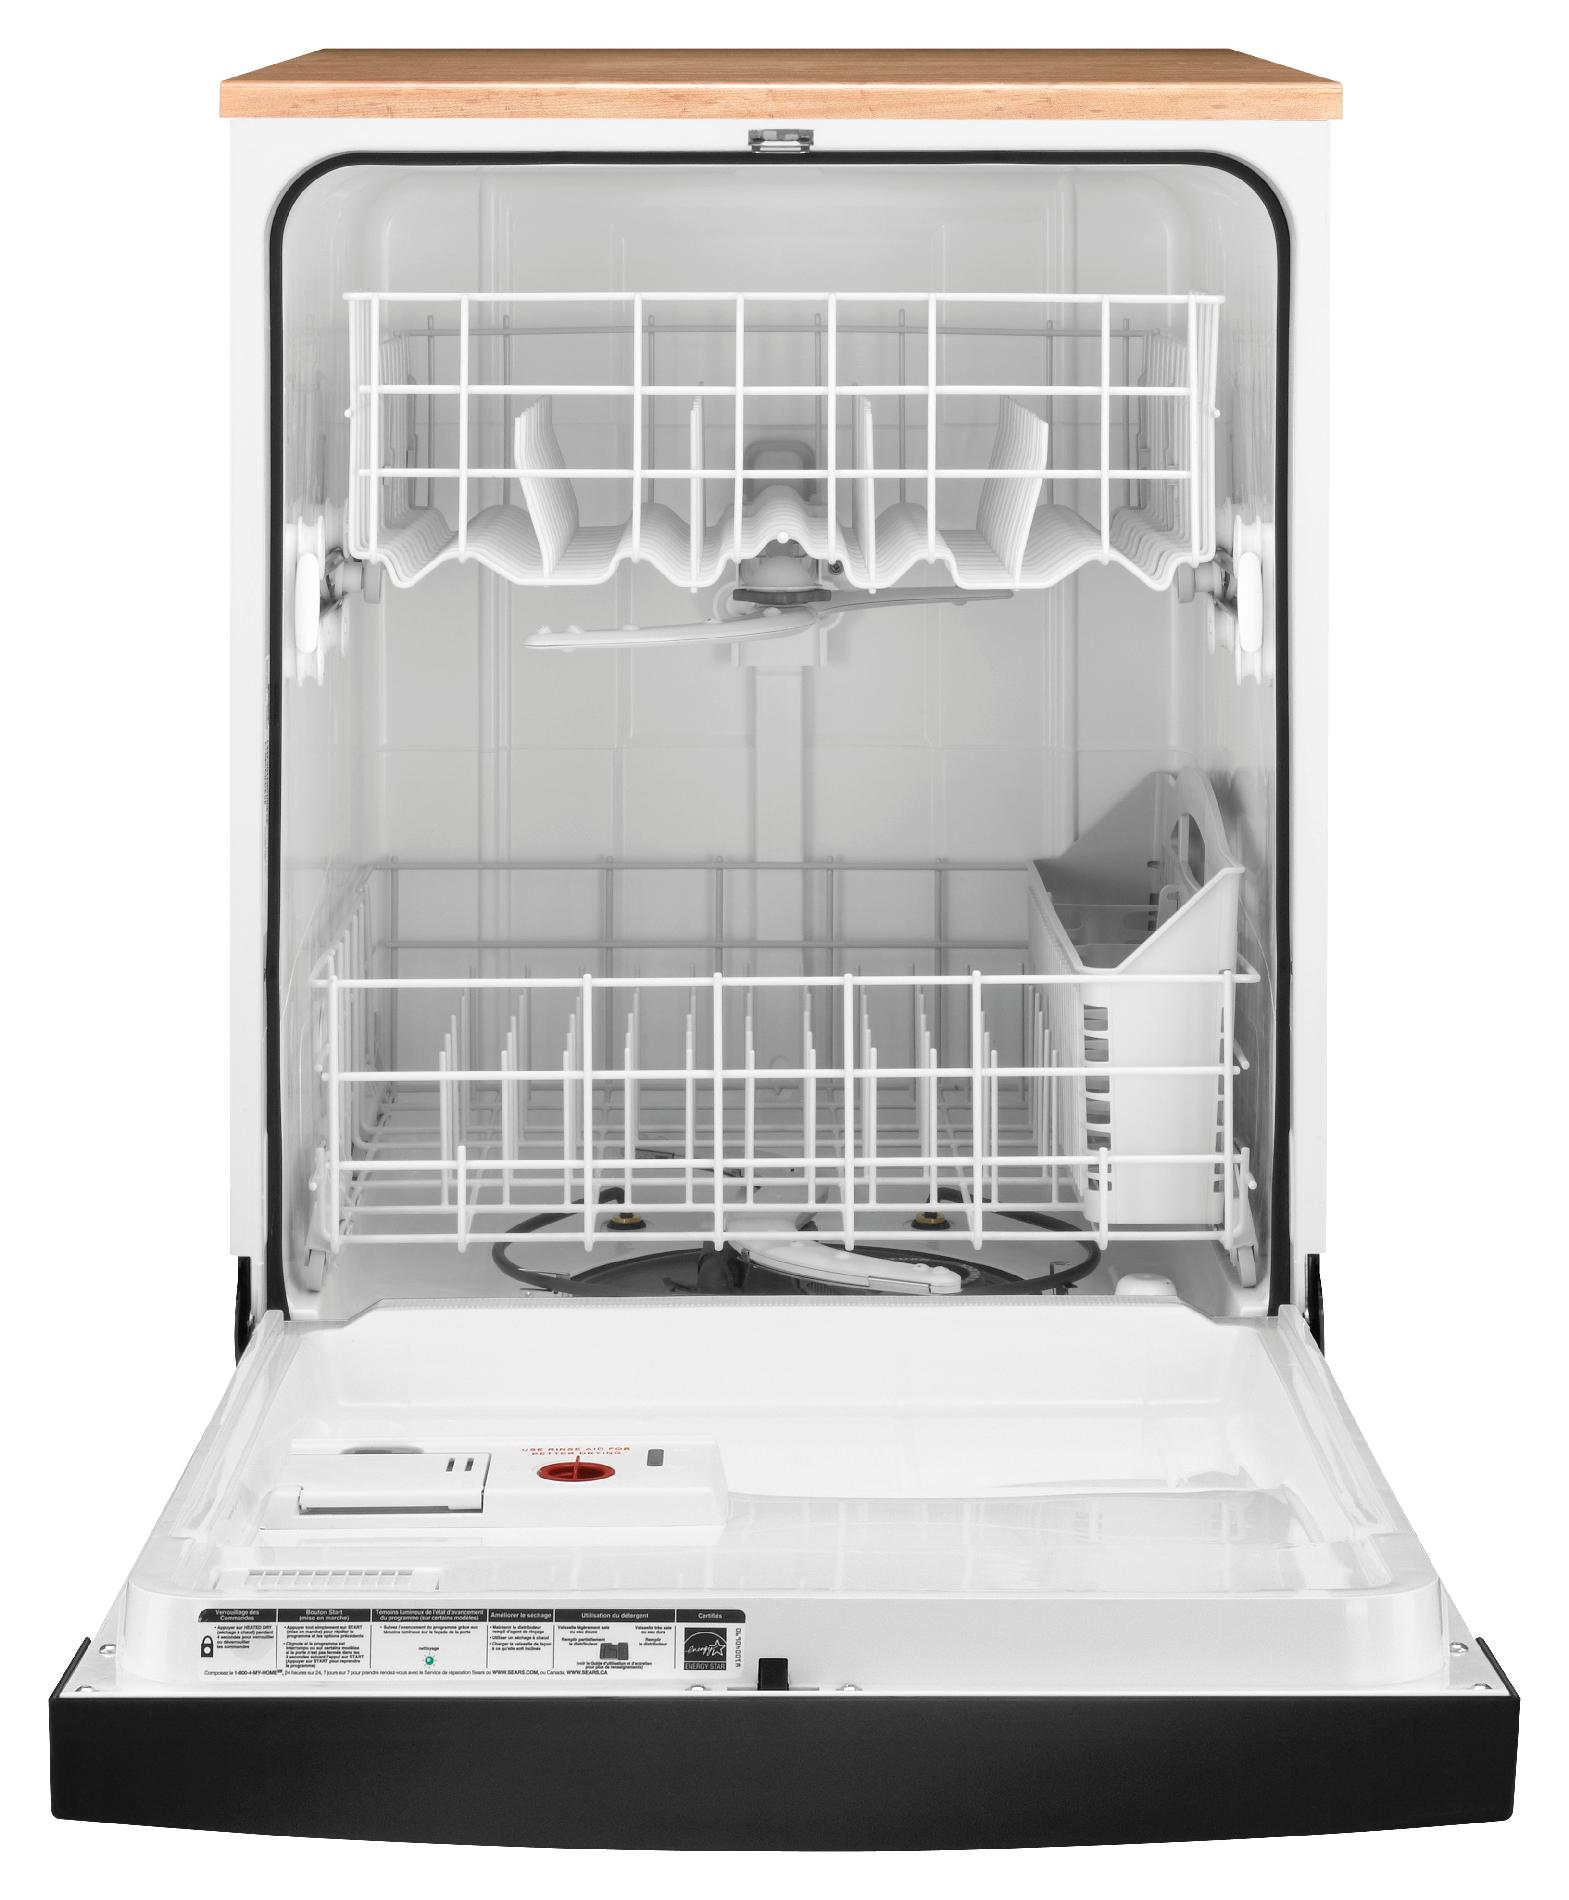 "Kenmore 24"" Portable Dishwasher - Black"